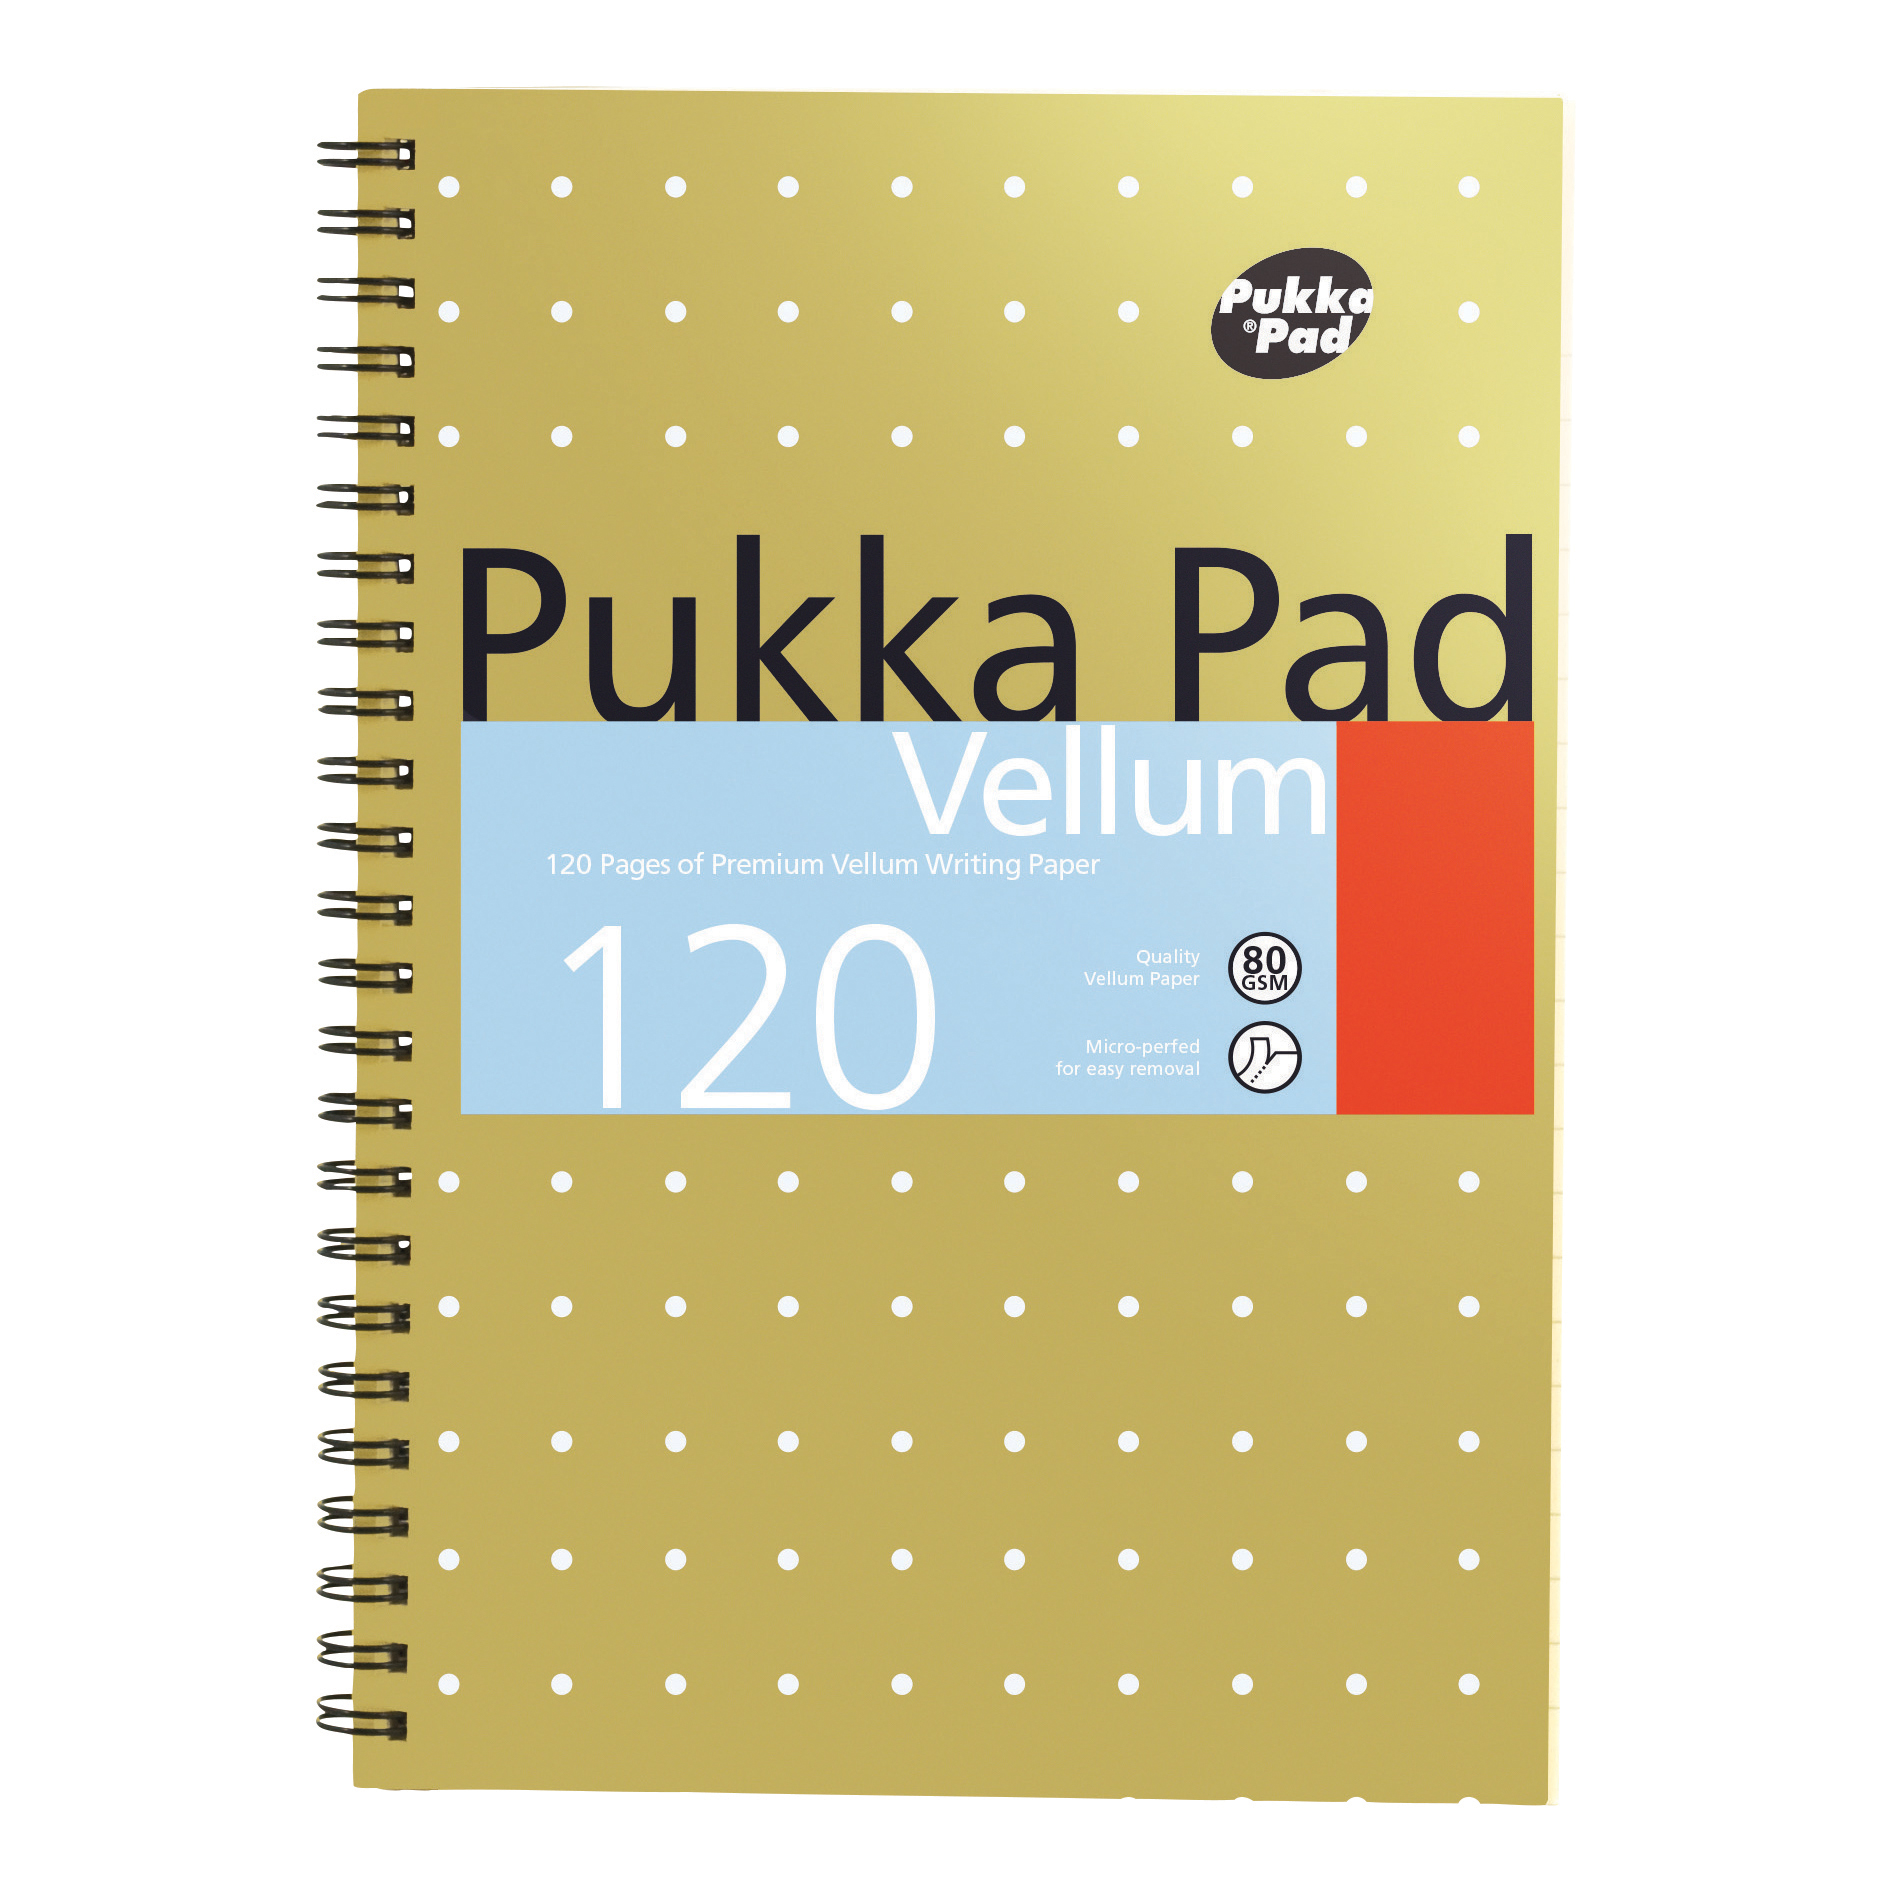 Pukka Pad Vellum Notebook Wirebound 80gsm Ruled Perforated 120pp A5 Ref VJM/2 [Pack 3]